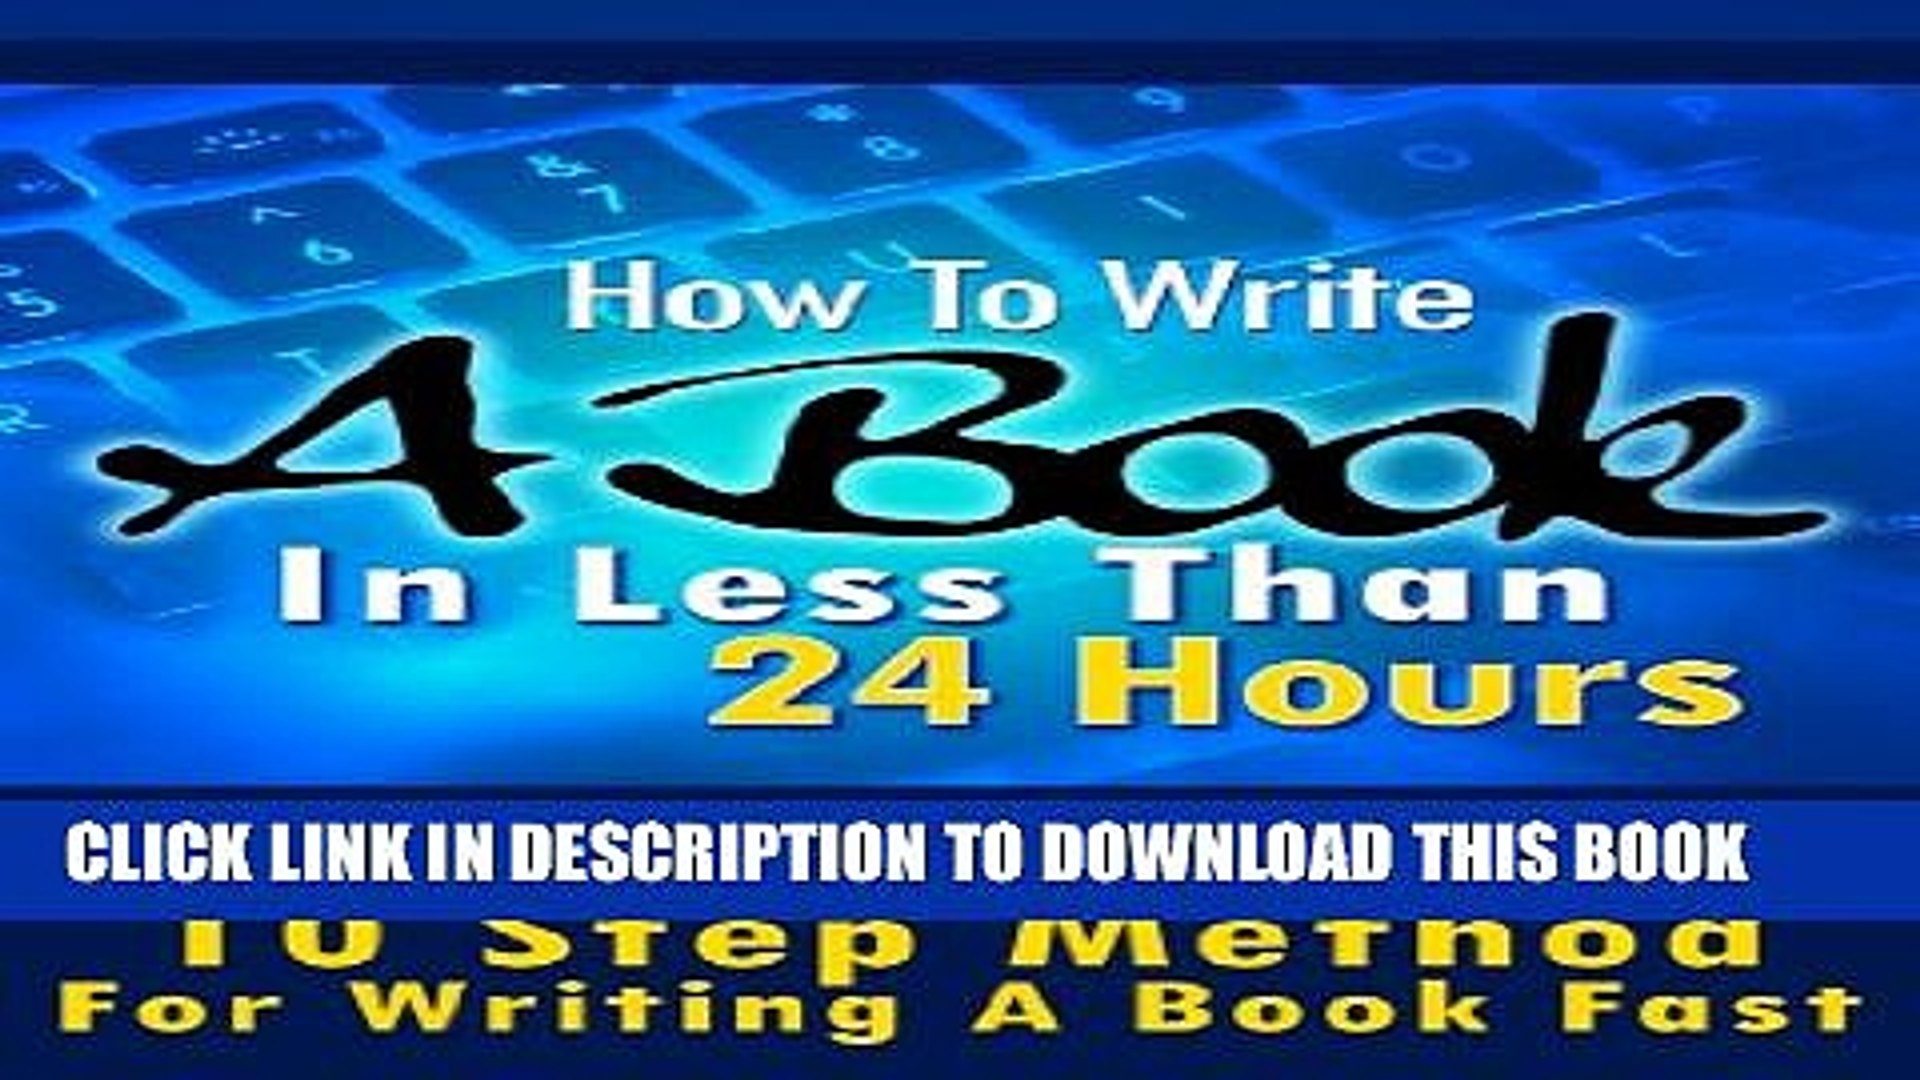 [PDF] How To Write A Book In Less Than 24 Hours (How To Write A Kindle Book, How To Write A Novel,